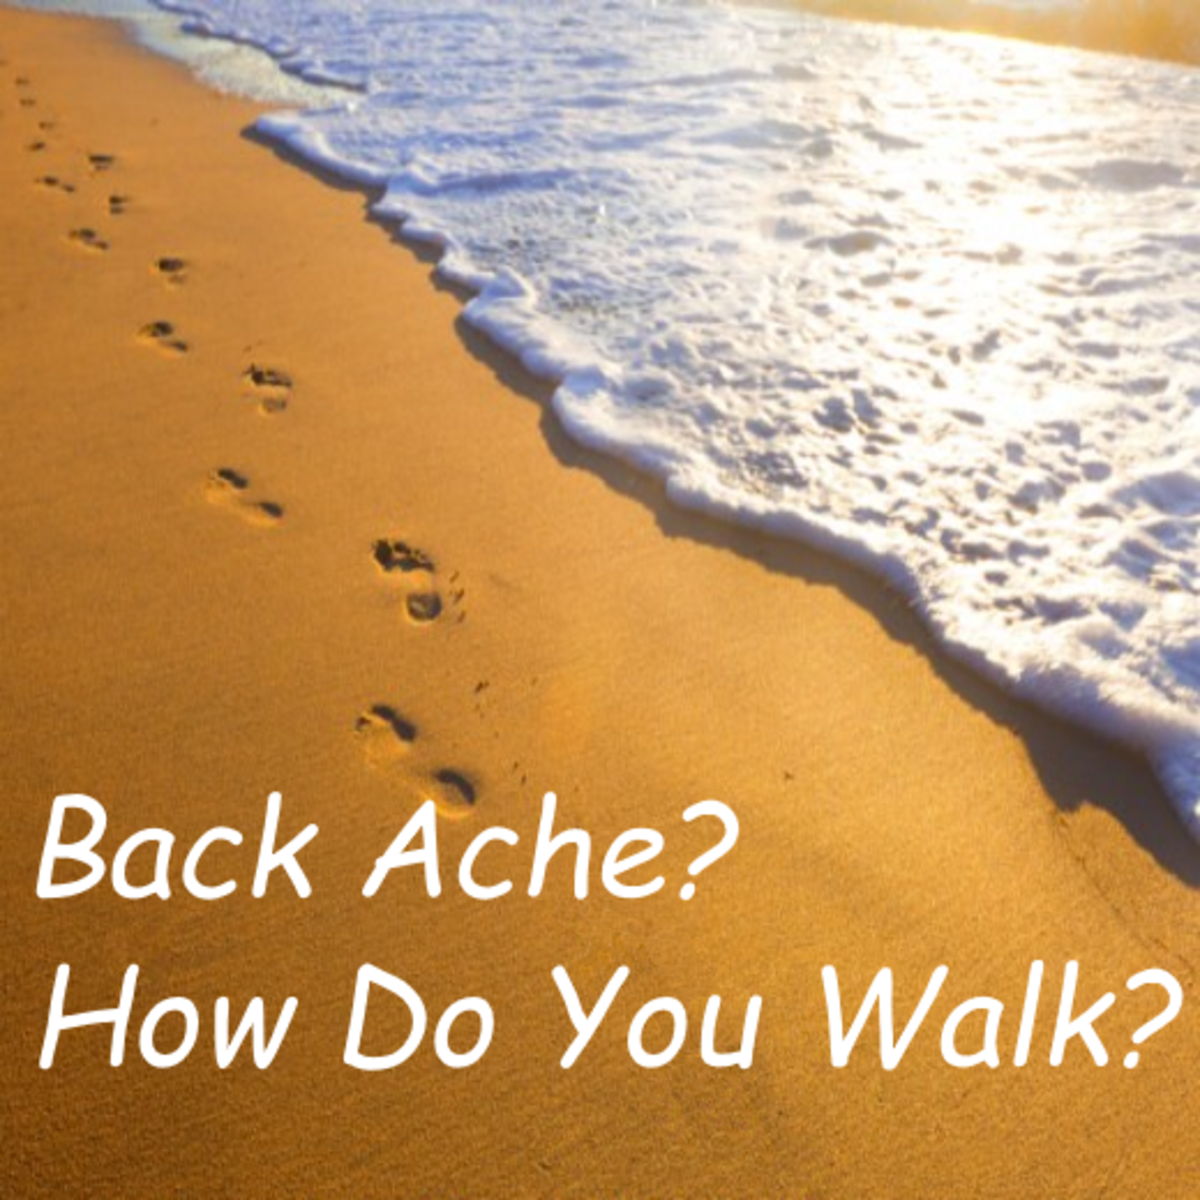 Back Ache? How do You Walk?